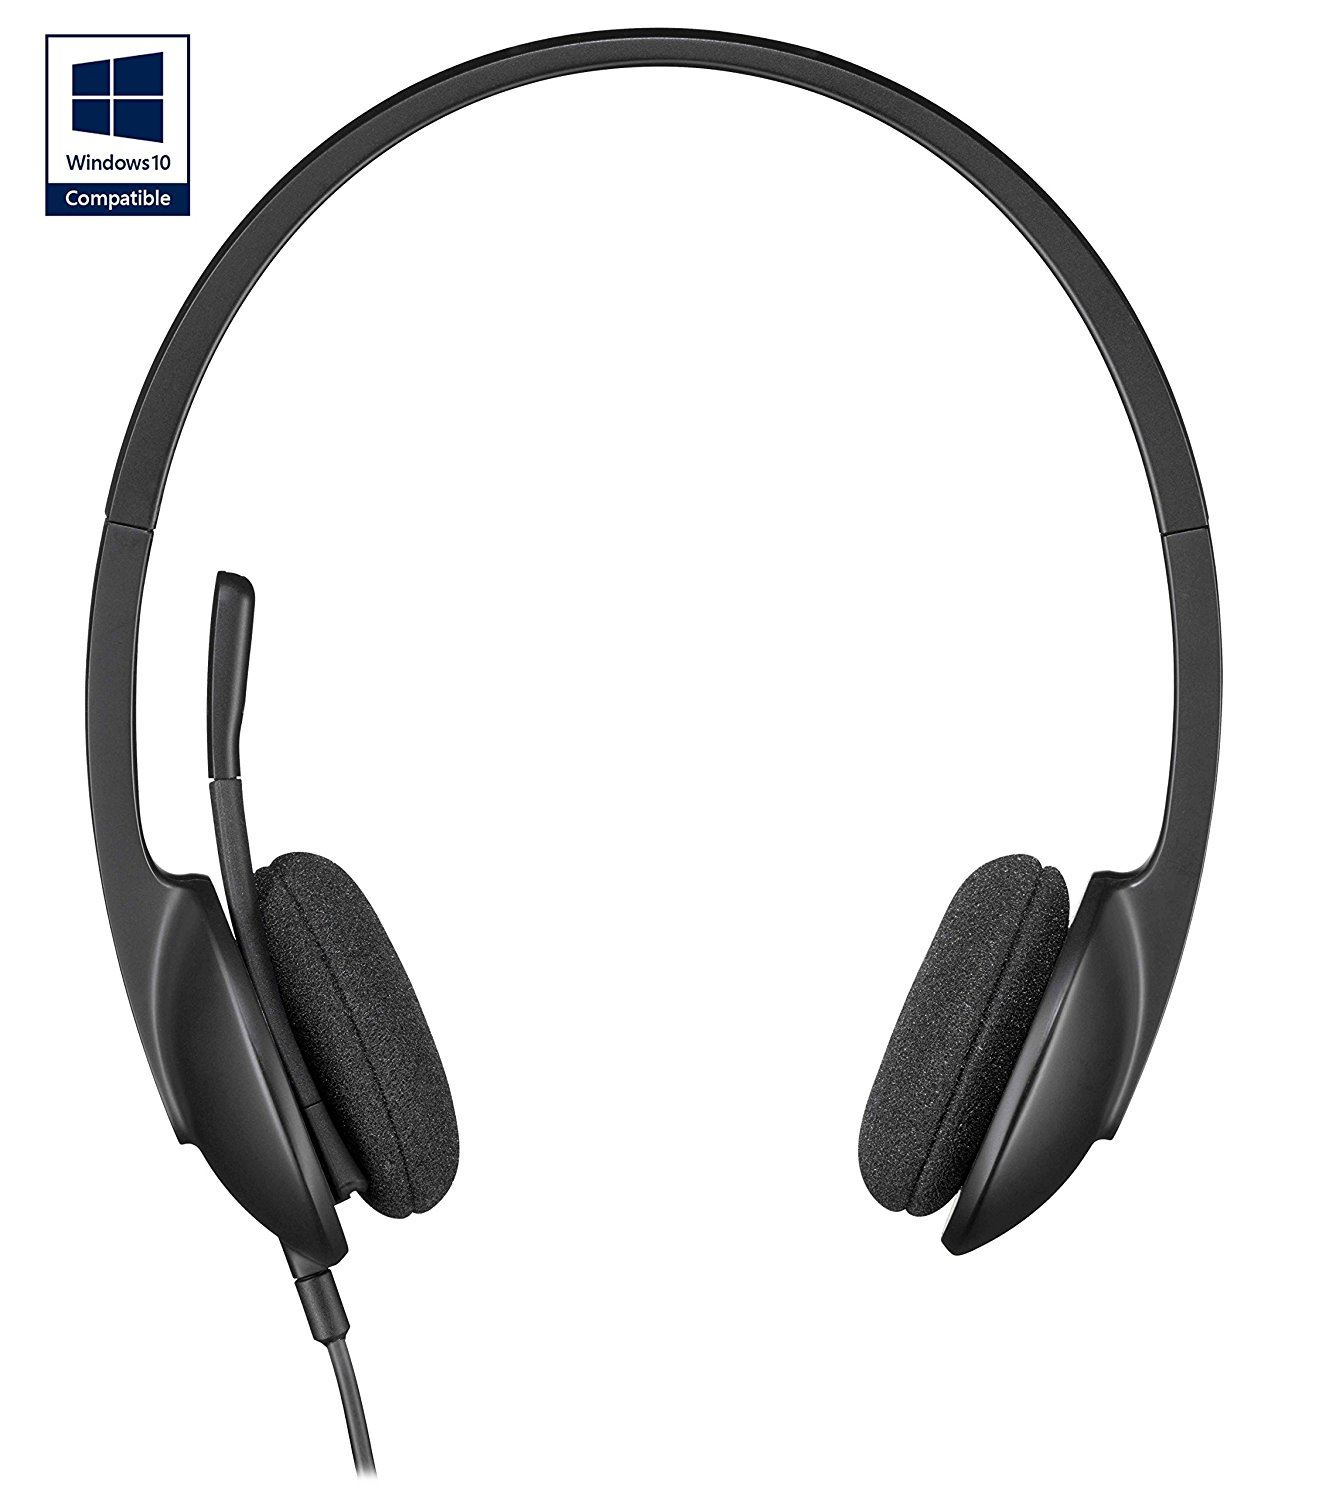 f76ddf29e4f Details about Logitech H340 Headset for Skype, PC and Mac USB Headphones  with mic 981-000475